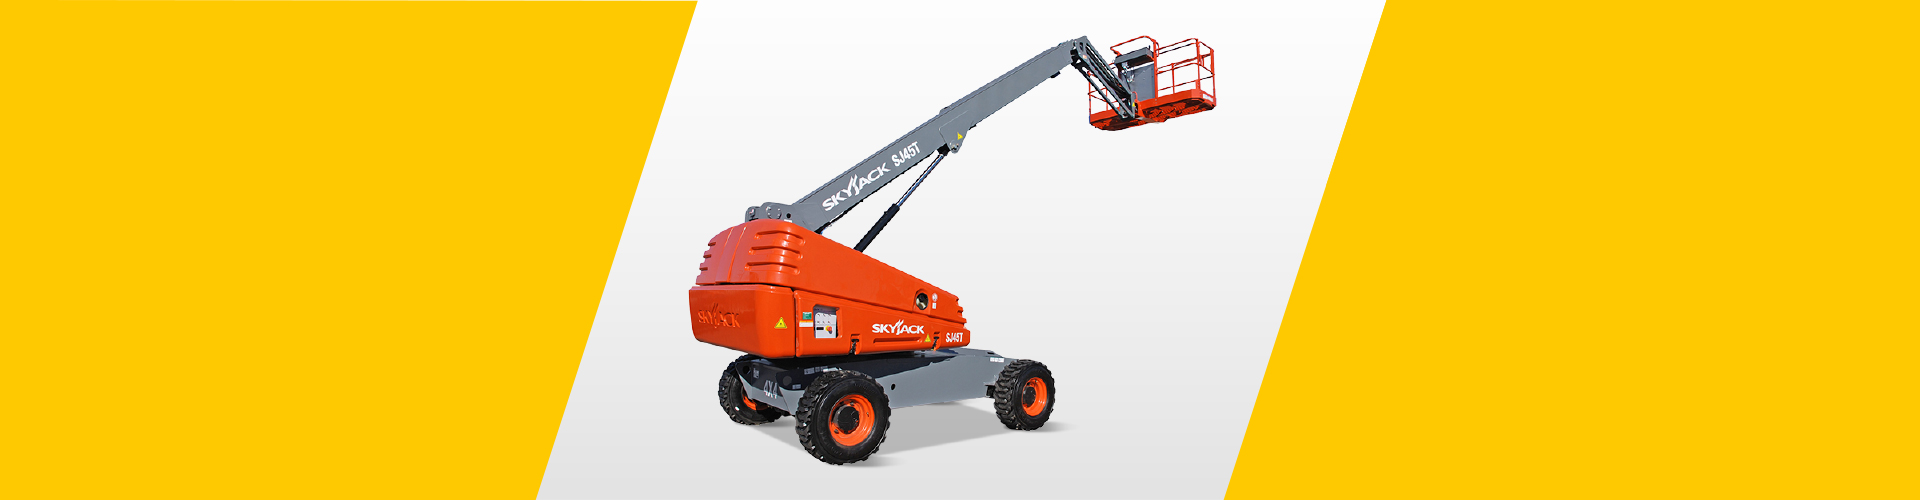 /products/plant-hire/telescopic-handler-hire/